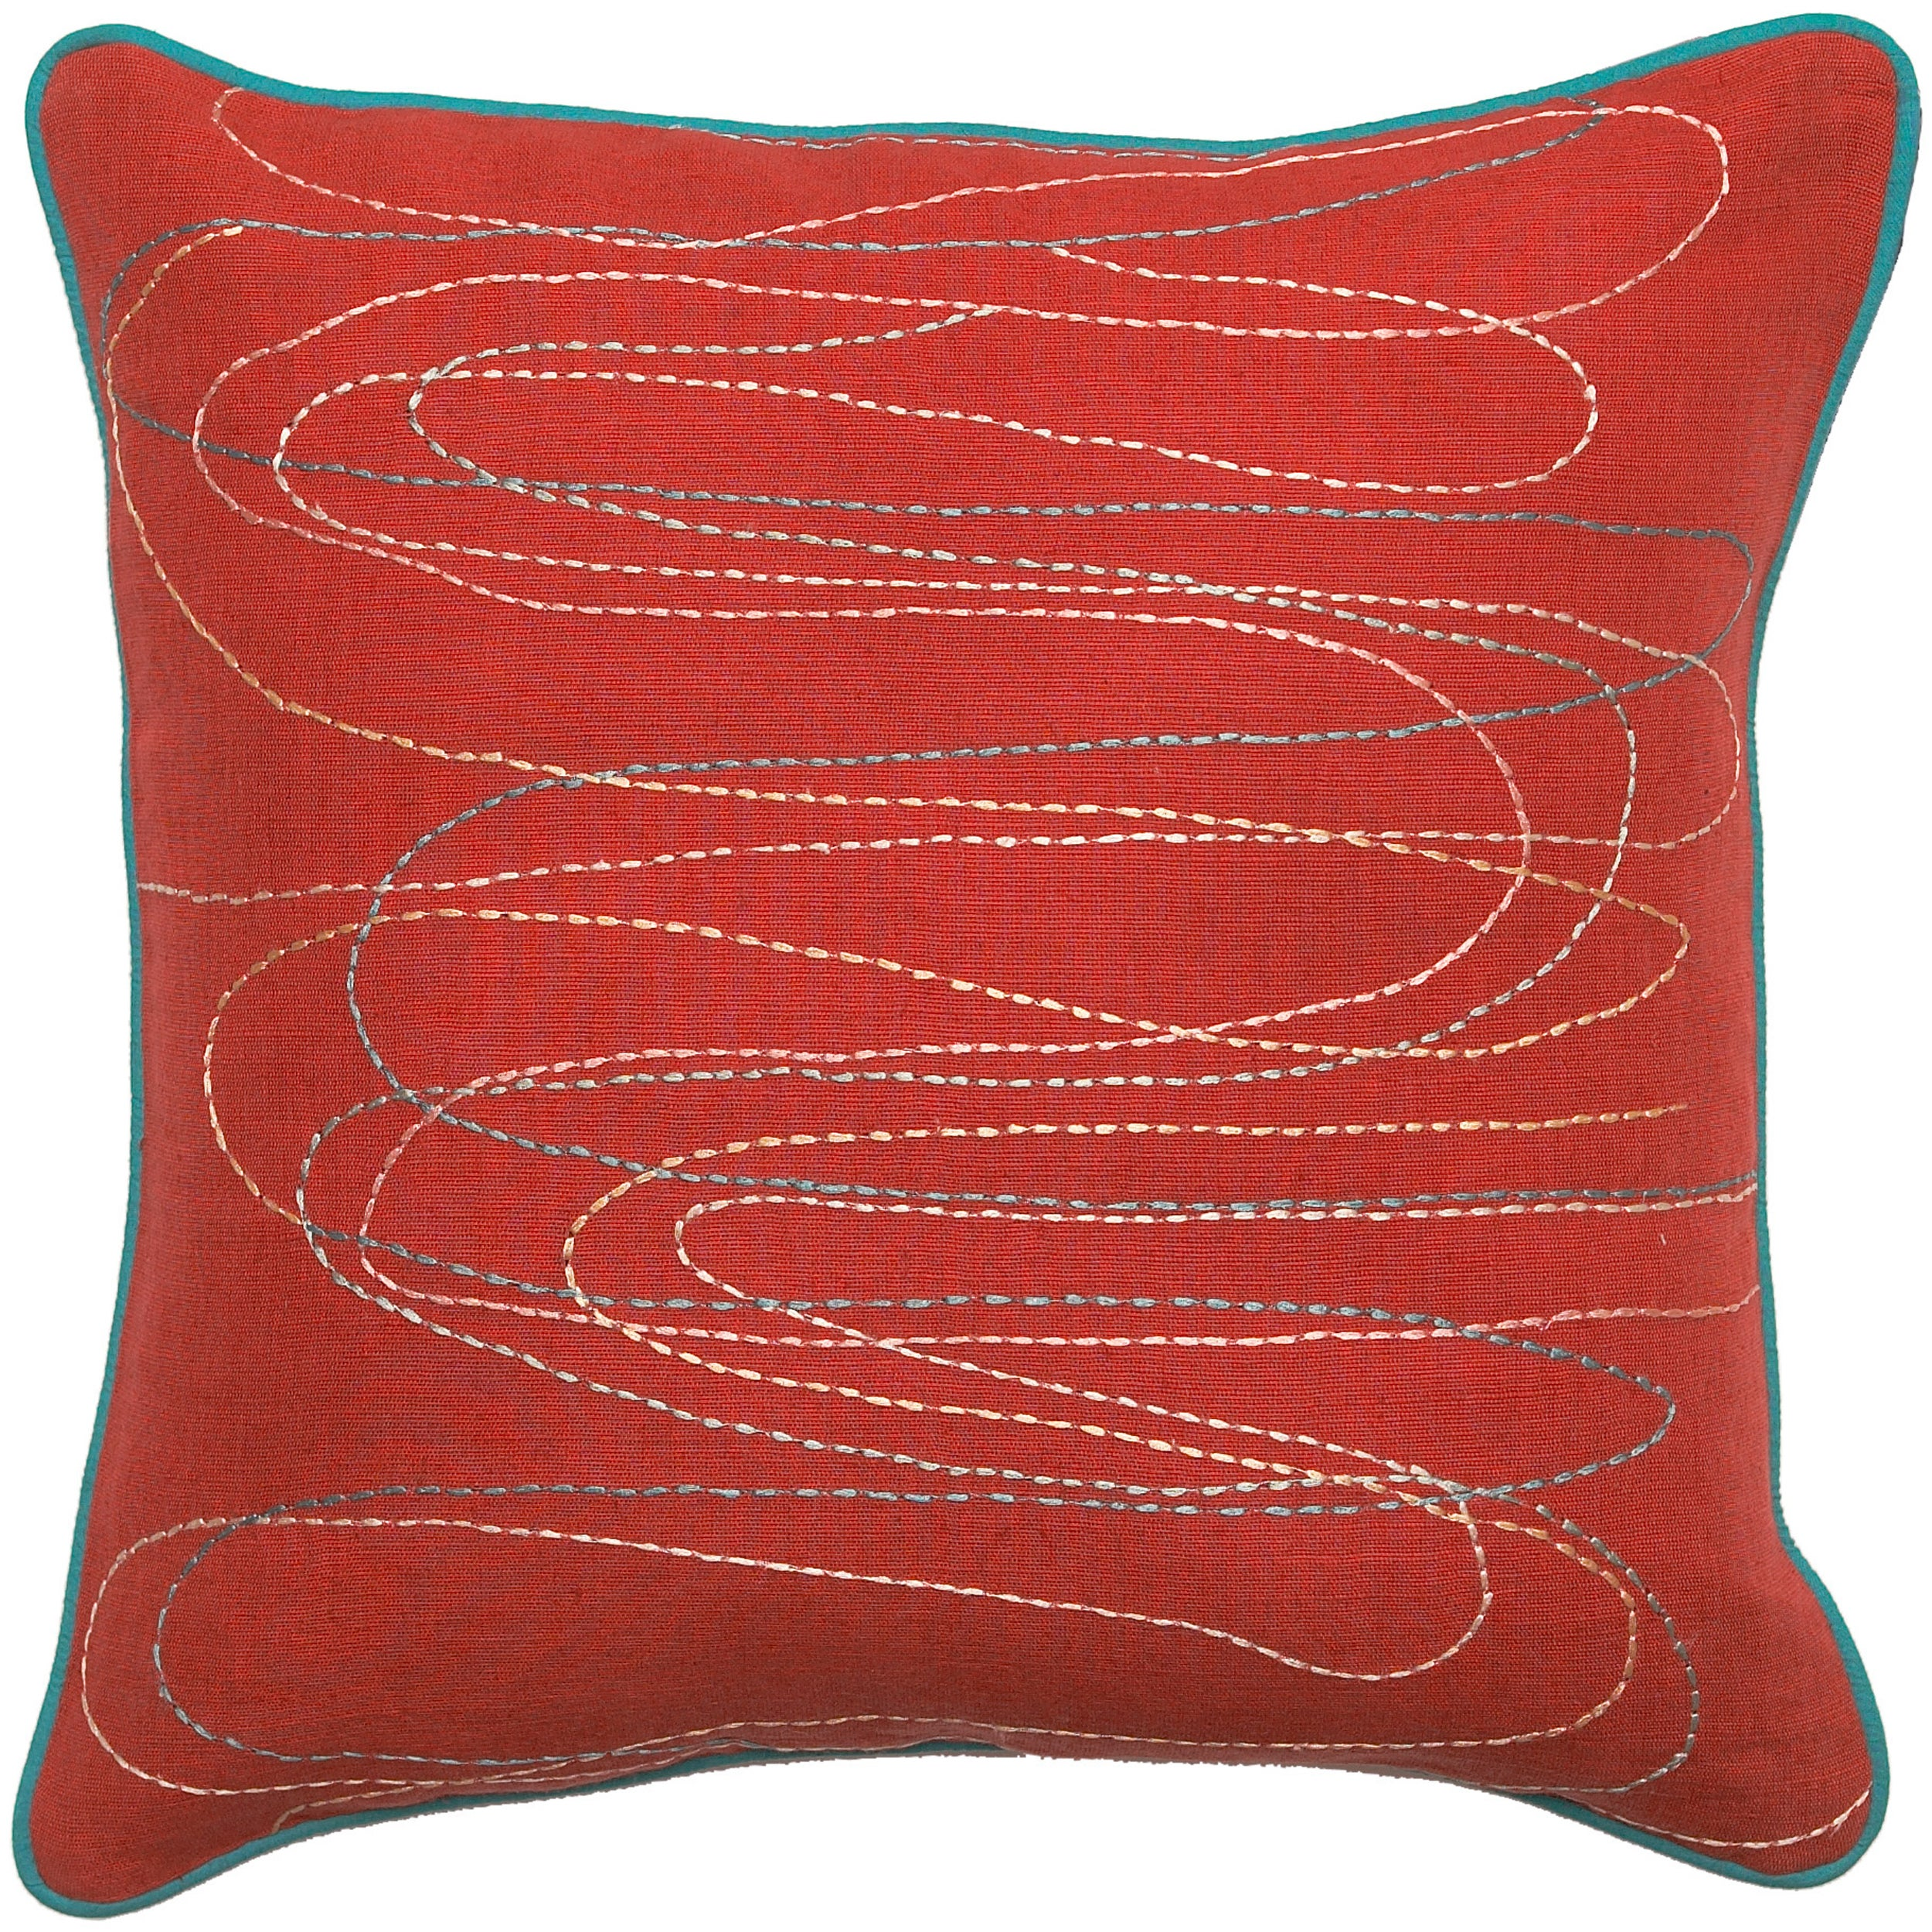 Down Filled 'Rutland' 18-inch Square Decorative Pillow